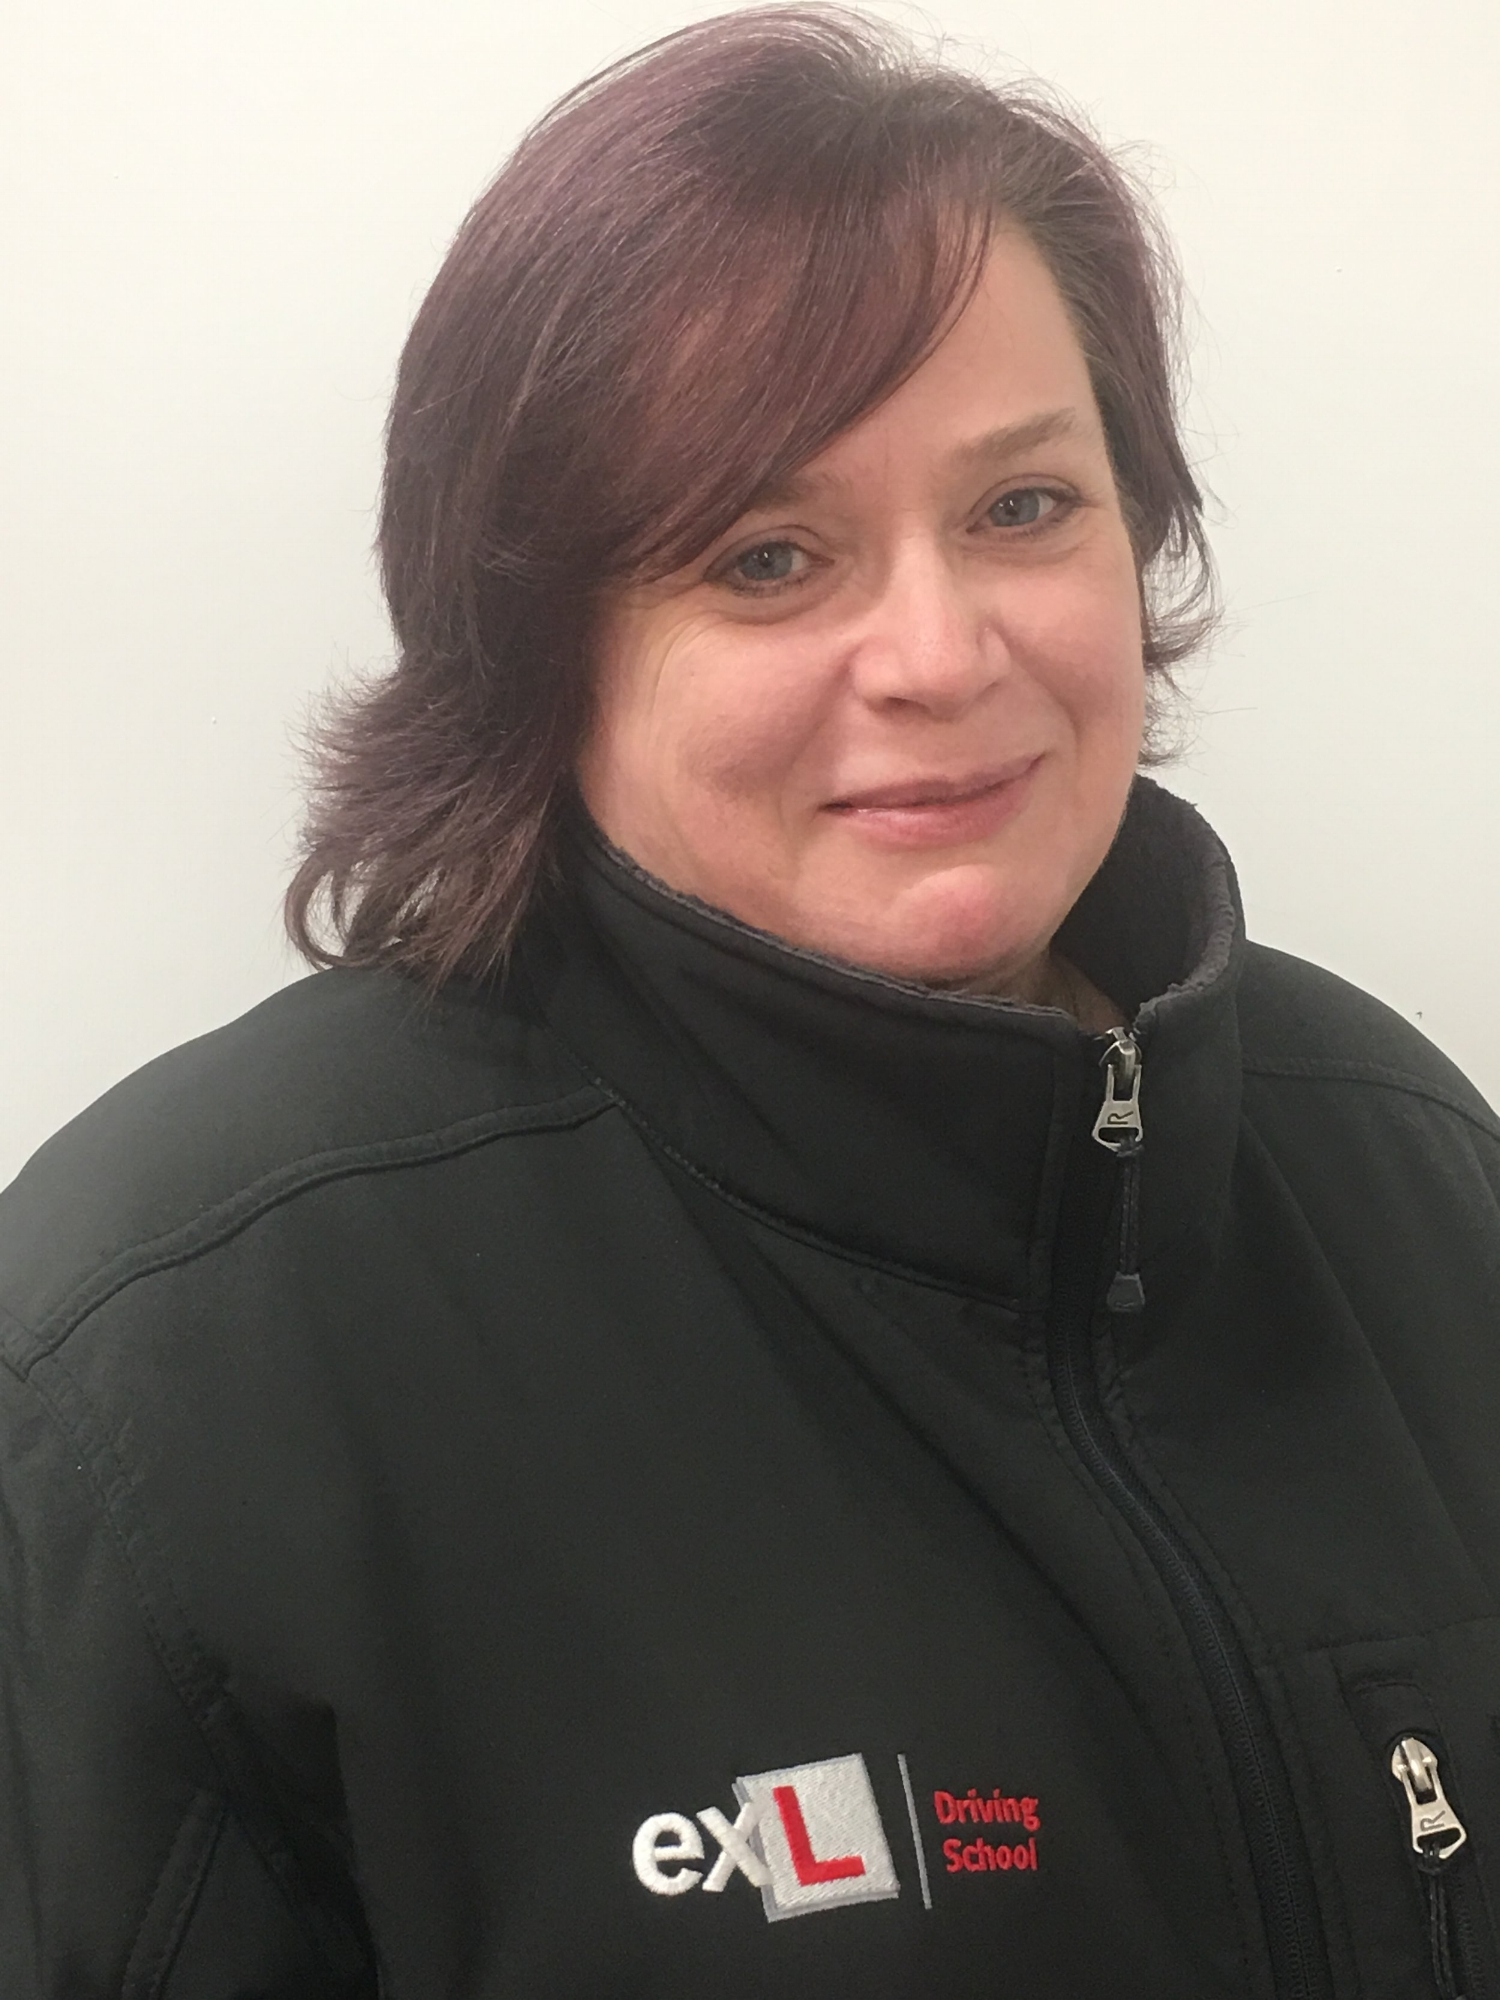 Kim - Kim has been with EXL Driving School since the start! She can normally be found in the office and runs the site day to day as well as teaching under 17 drivers and learners on the road. Kim doesn't teach in the evenings, as she can regularly be found at Zumba or some other fitness class!Kim has been an ADI for nearly 10 years and is also a fleet assessor providing corporate clients and local schools with help and advice with their drivers and driver policies.